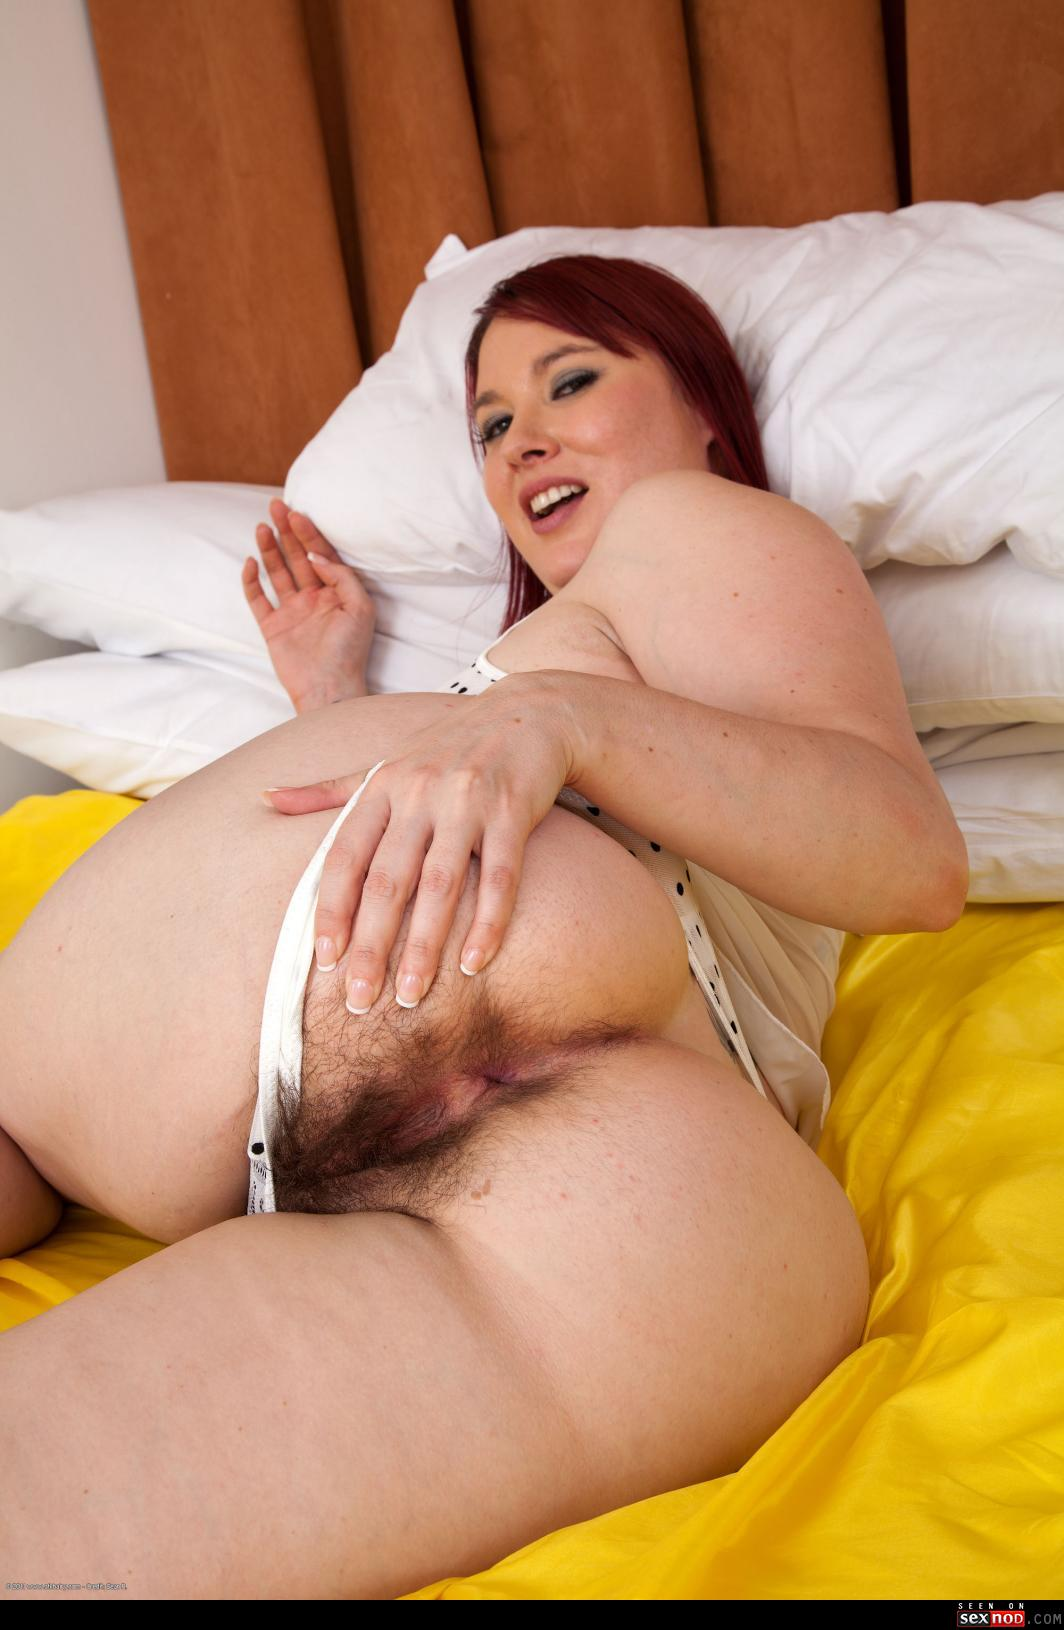 Bbw wifes hairy asshole hairy pussy on all 4s 6